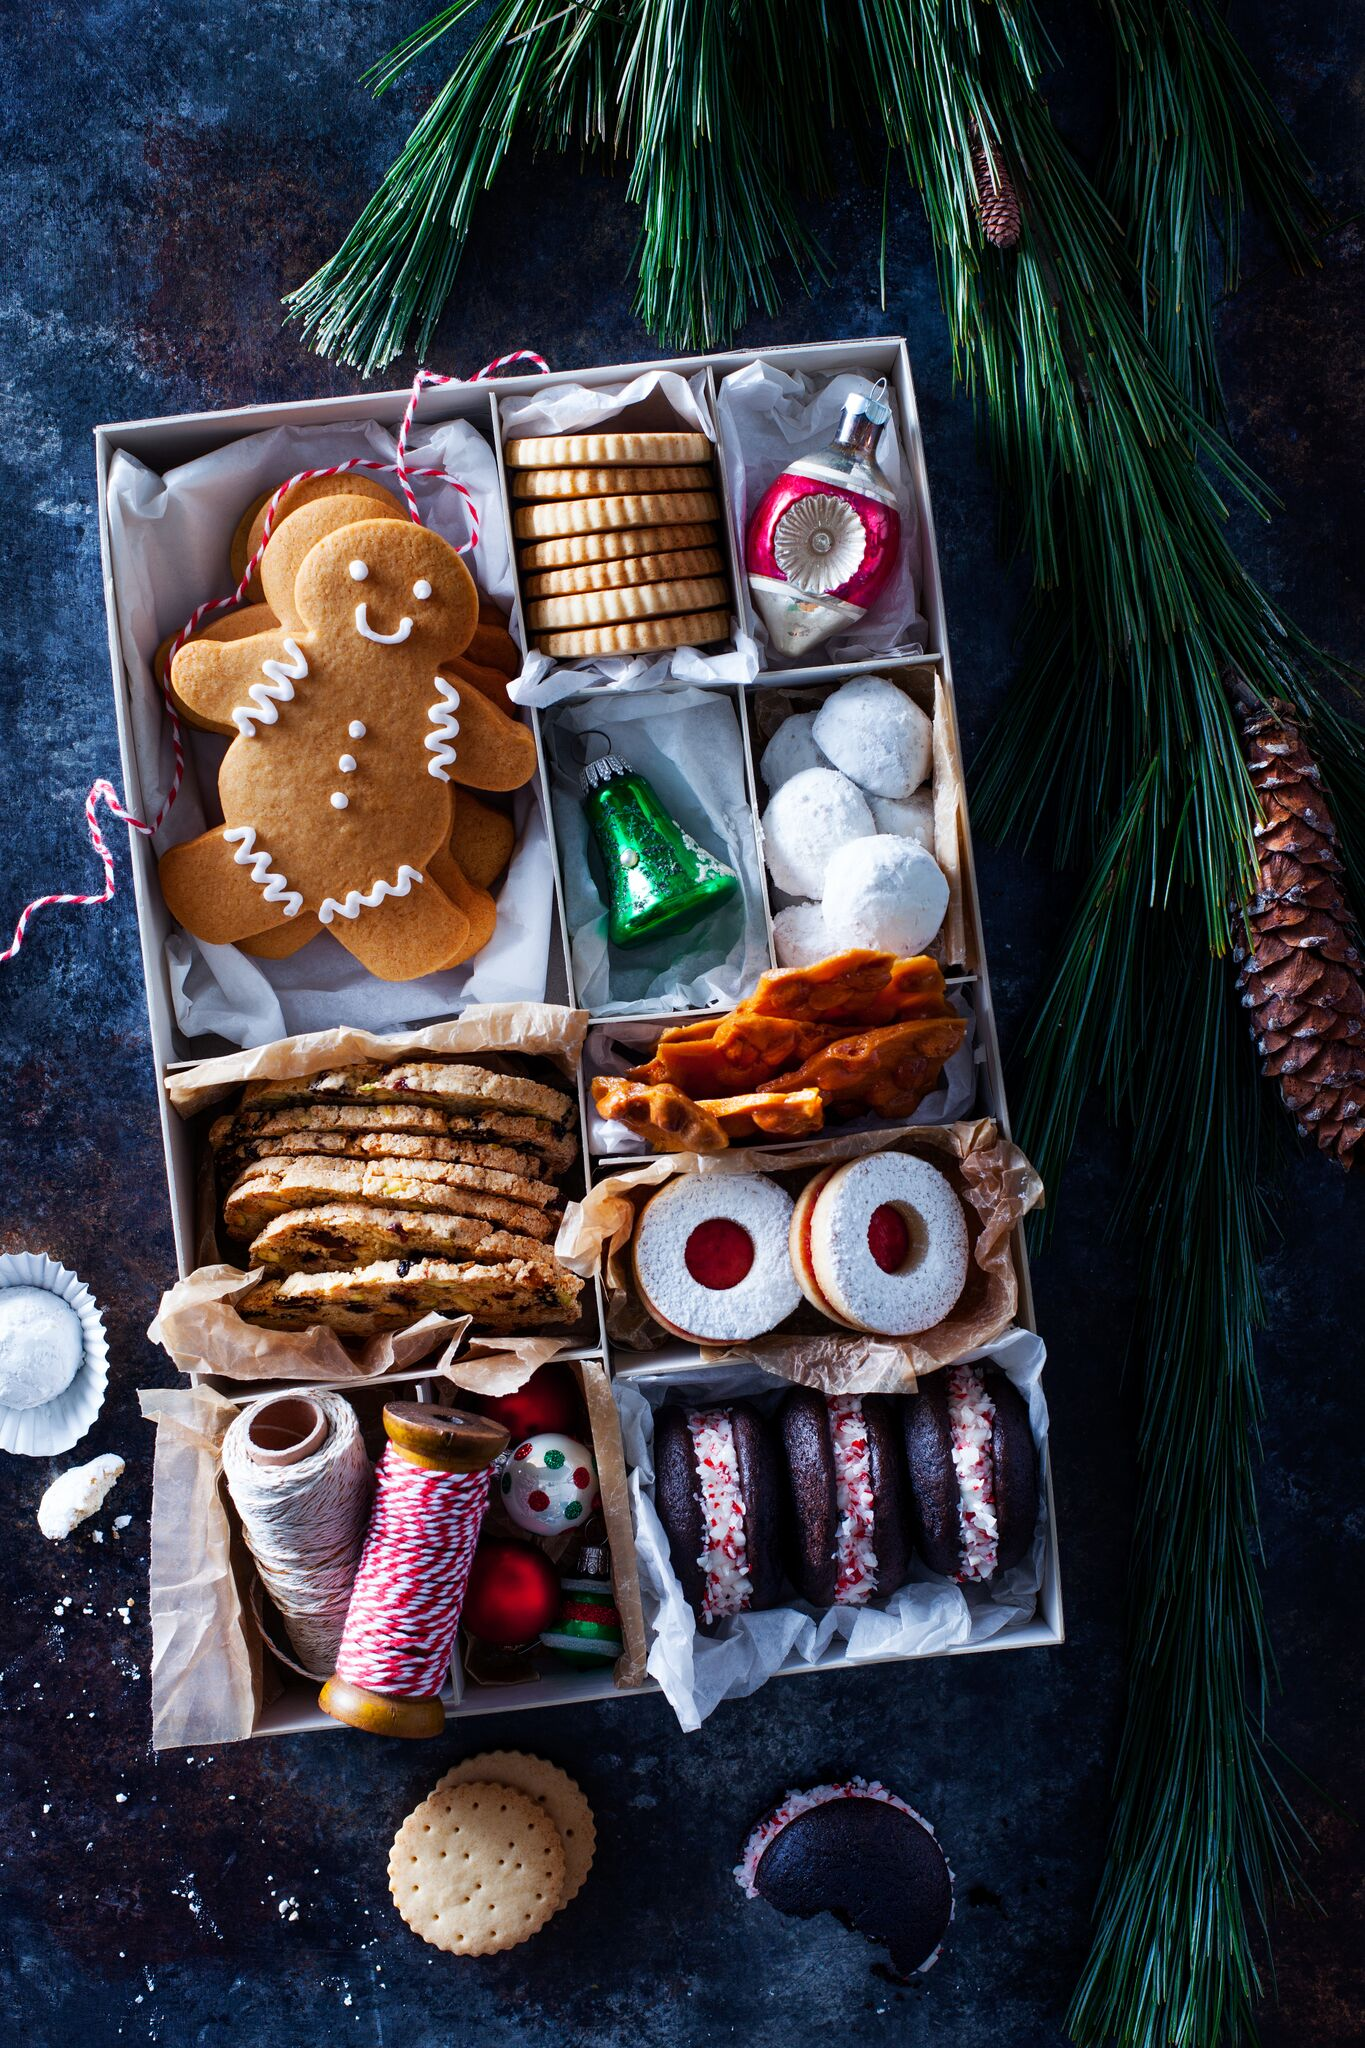 Natalie-Groce-Holiday-Cookies_05_preview.jpeg